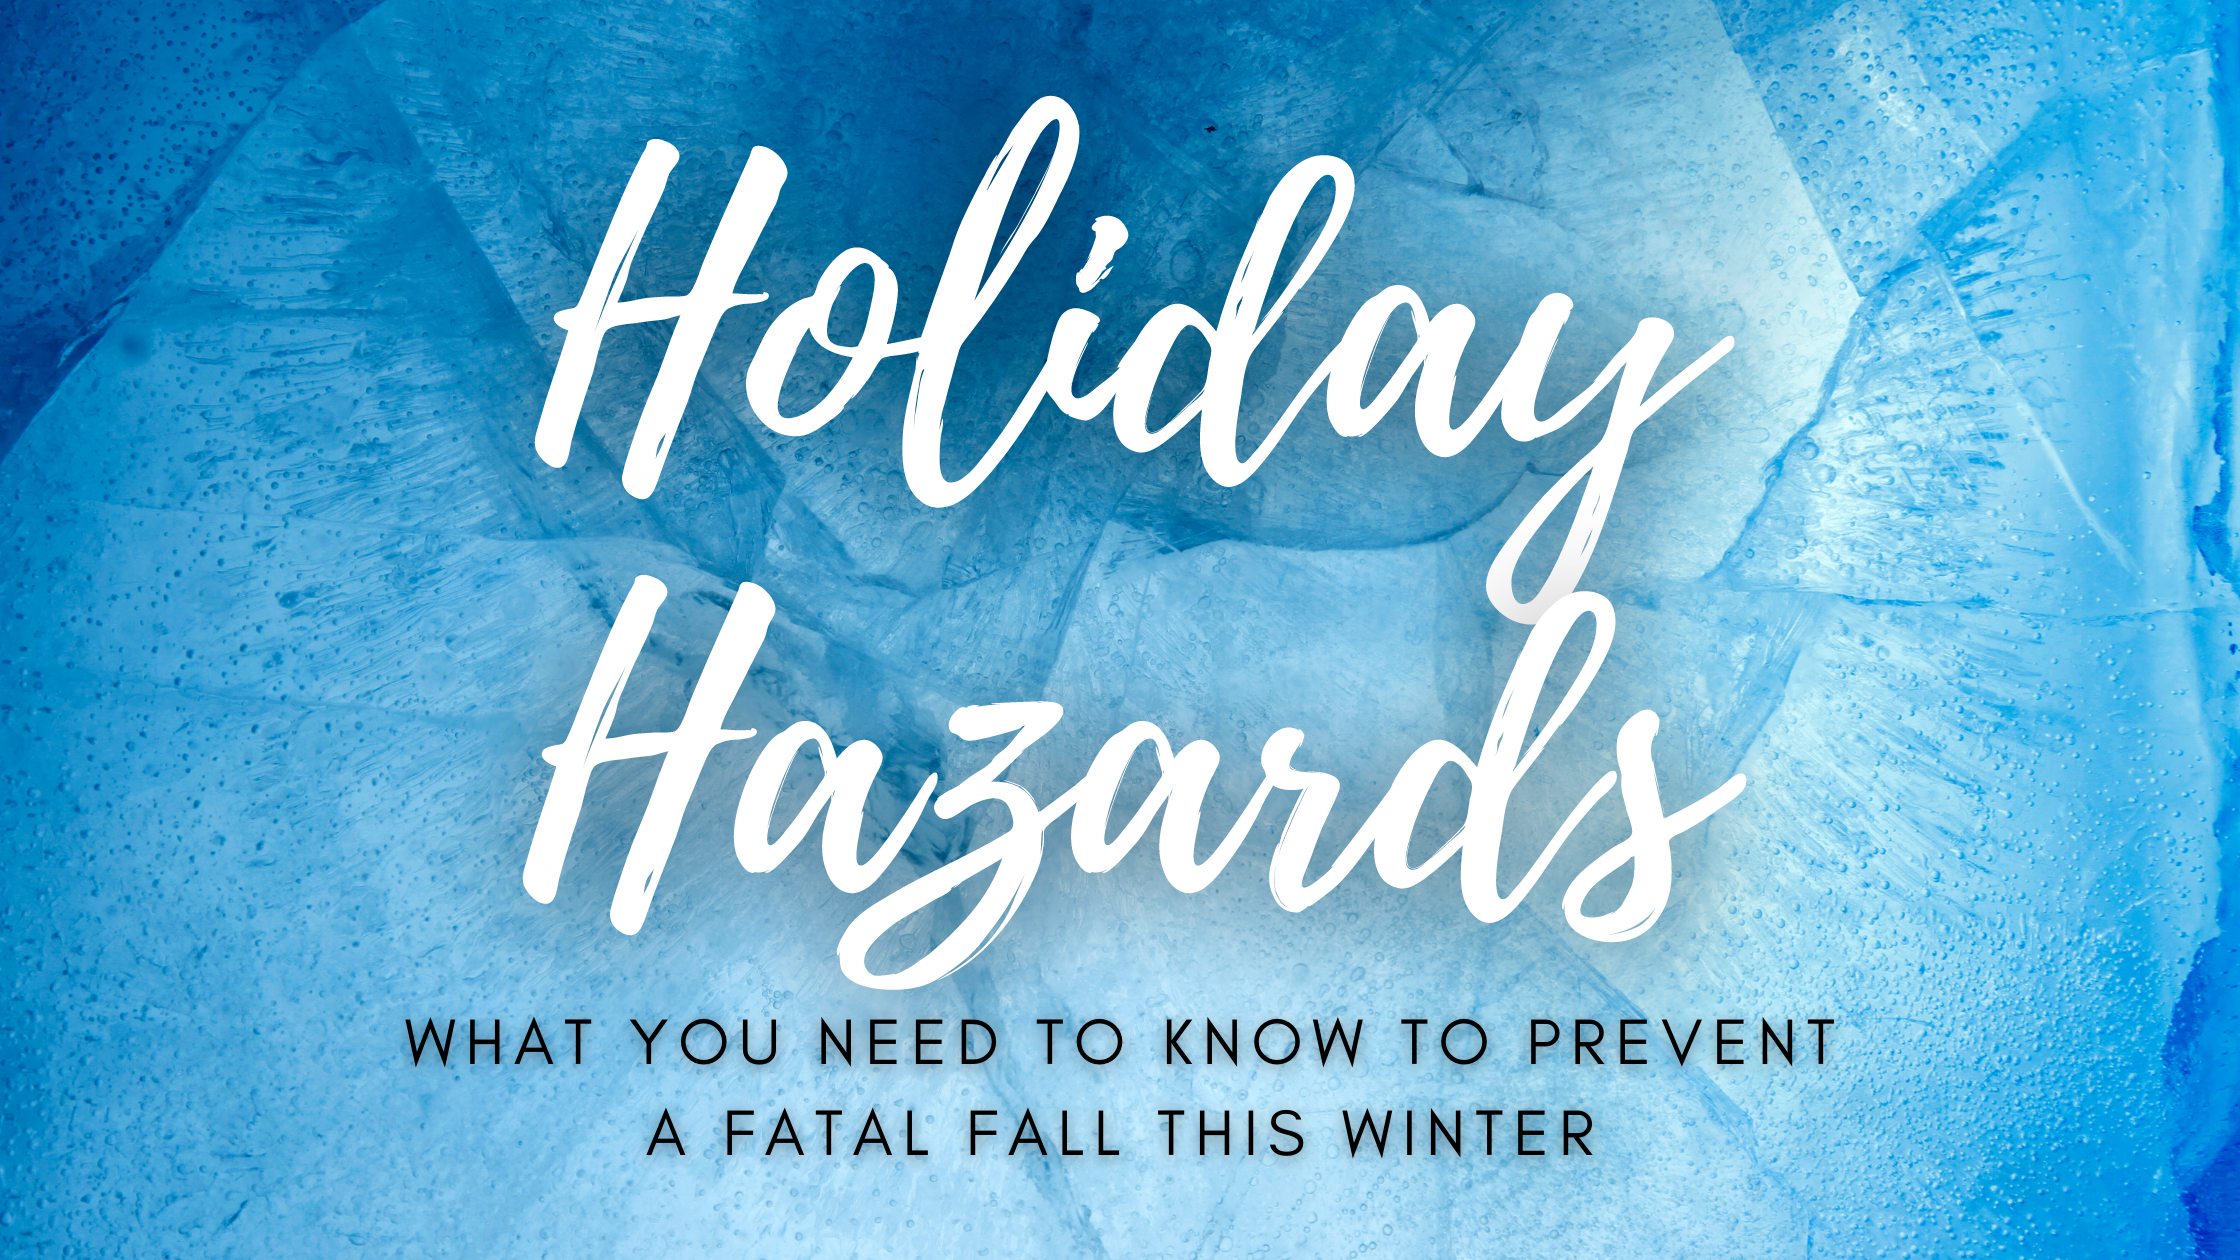 Holiday Hazards